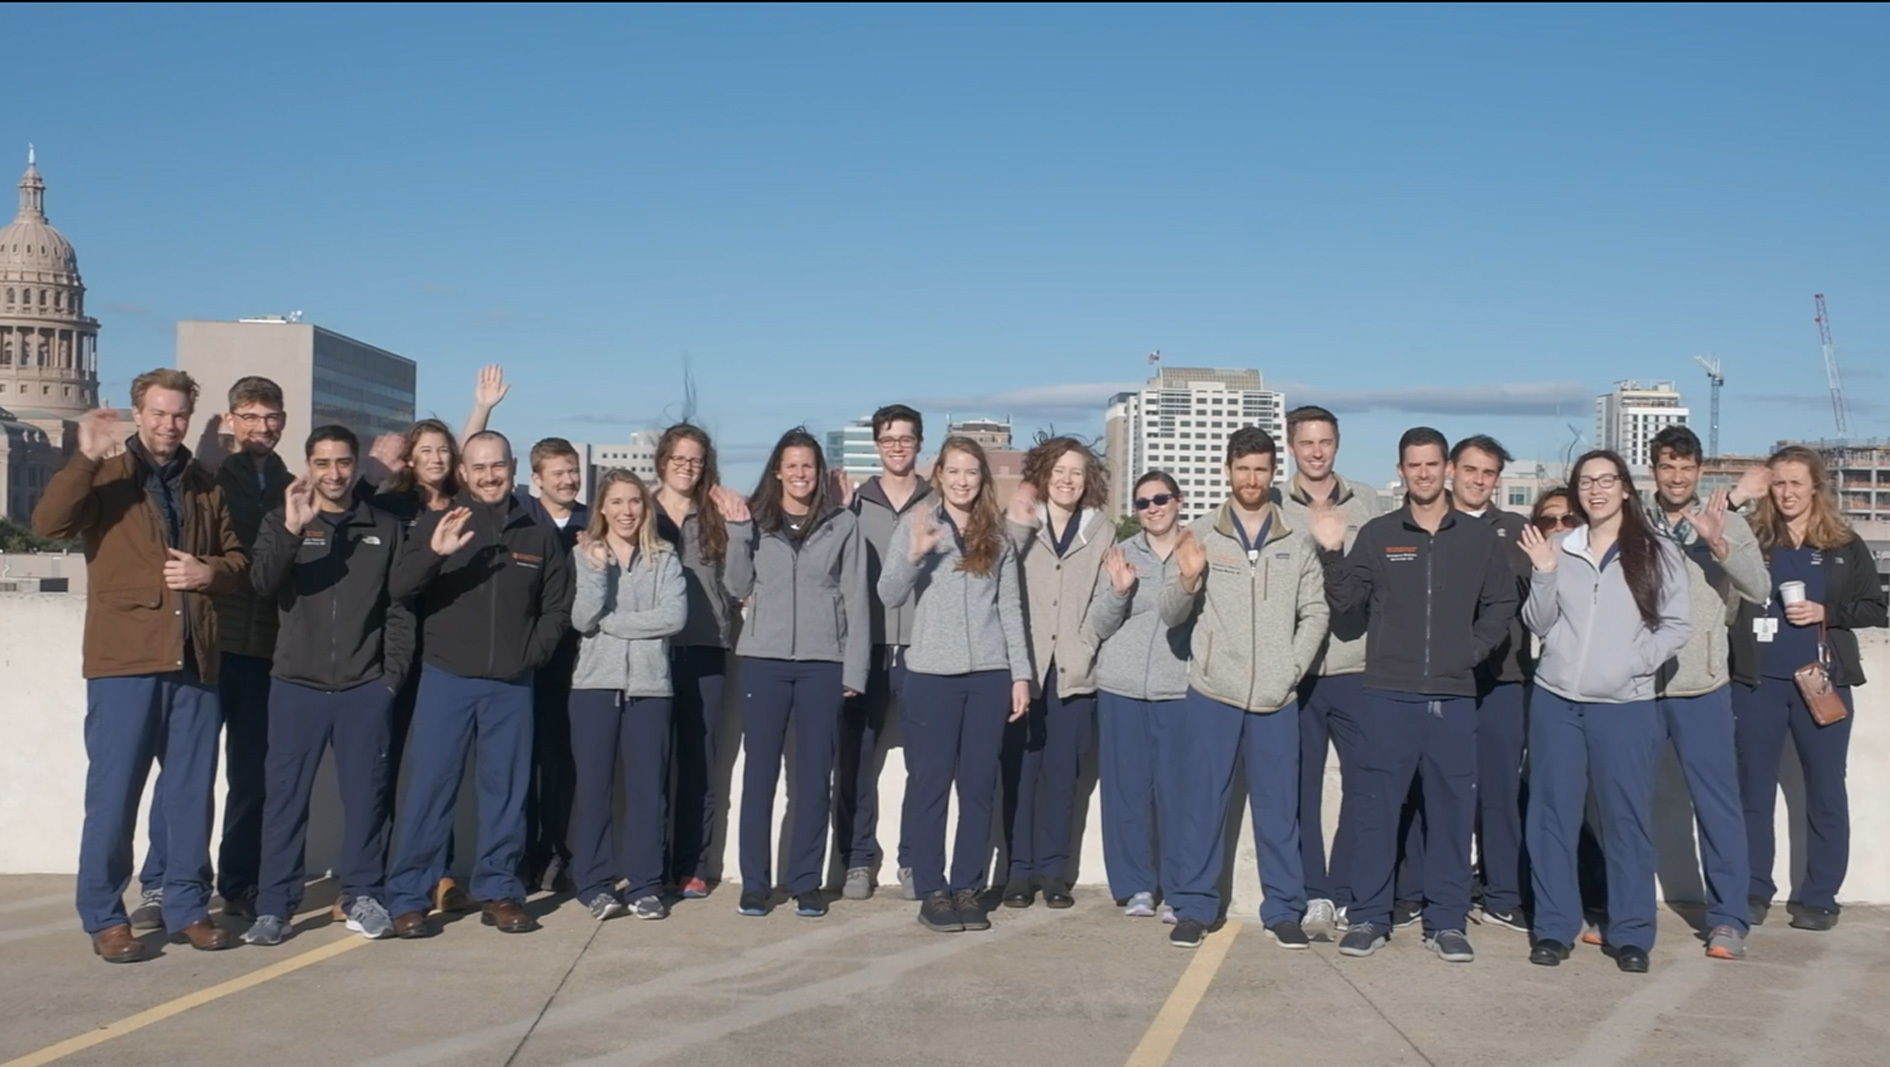 The Emergency Medicine Residency class in a group with the Texas Capitol in the background.